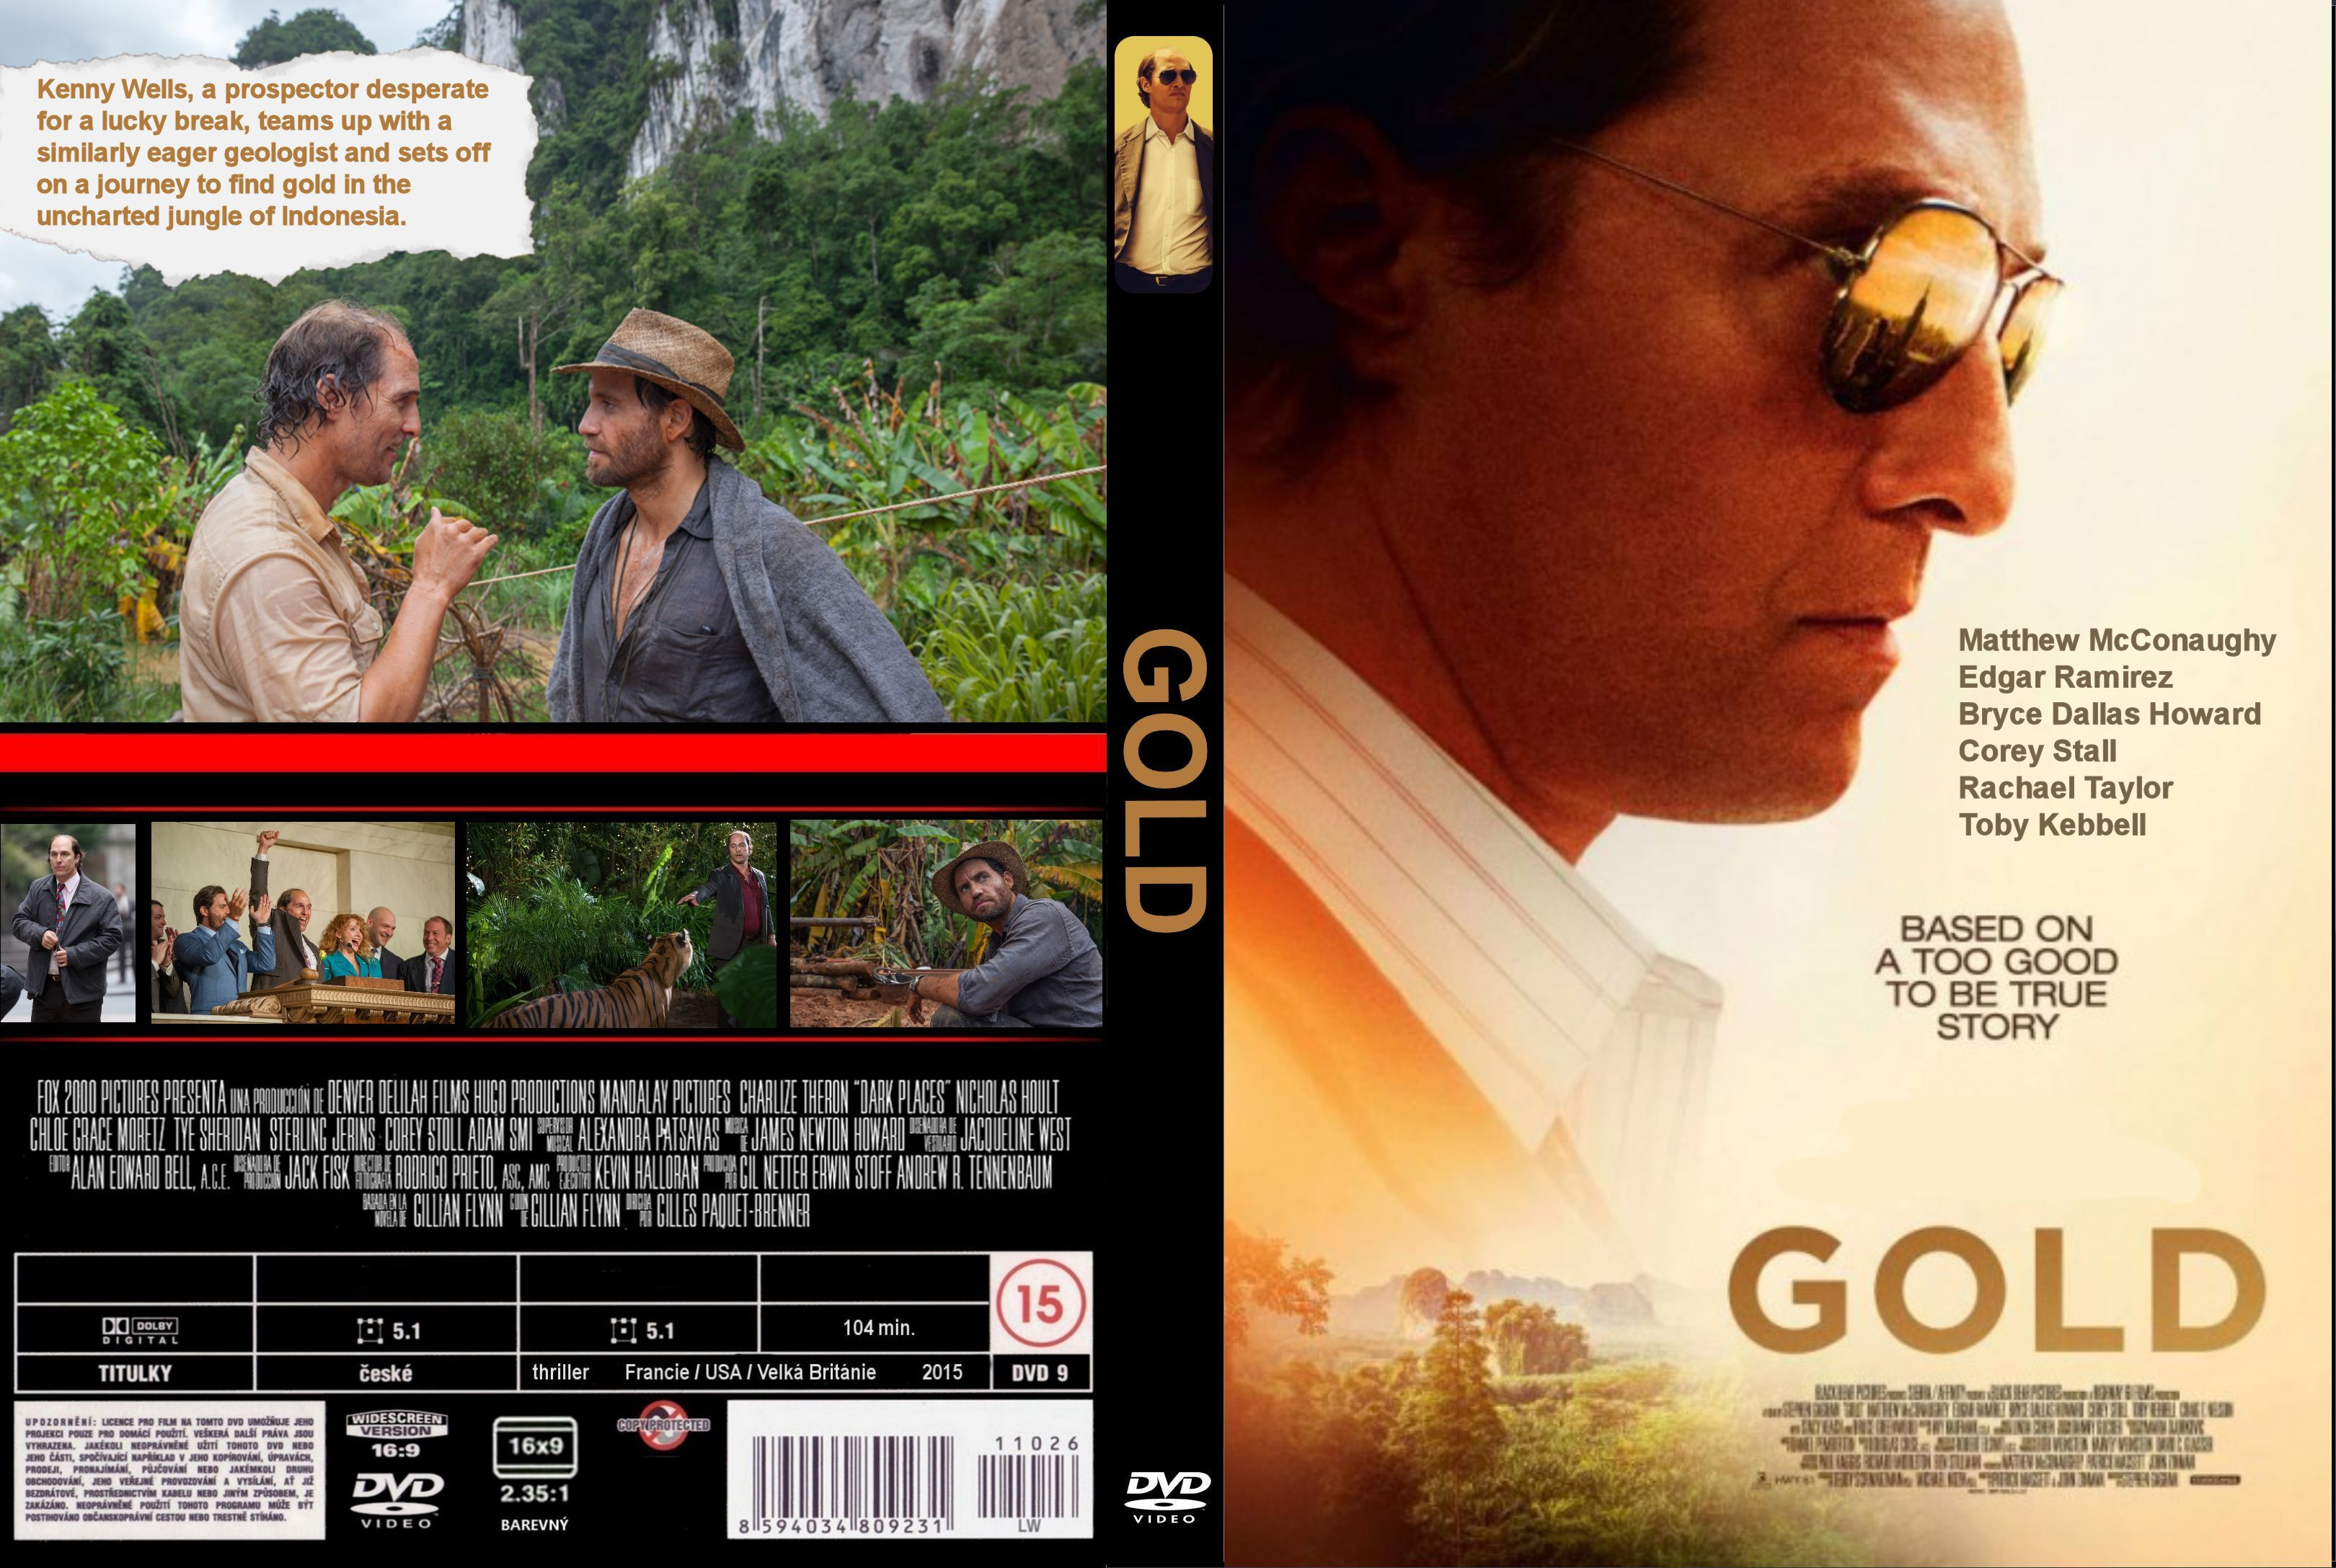 Gold (2016) cover front